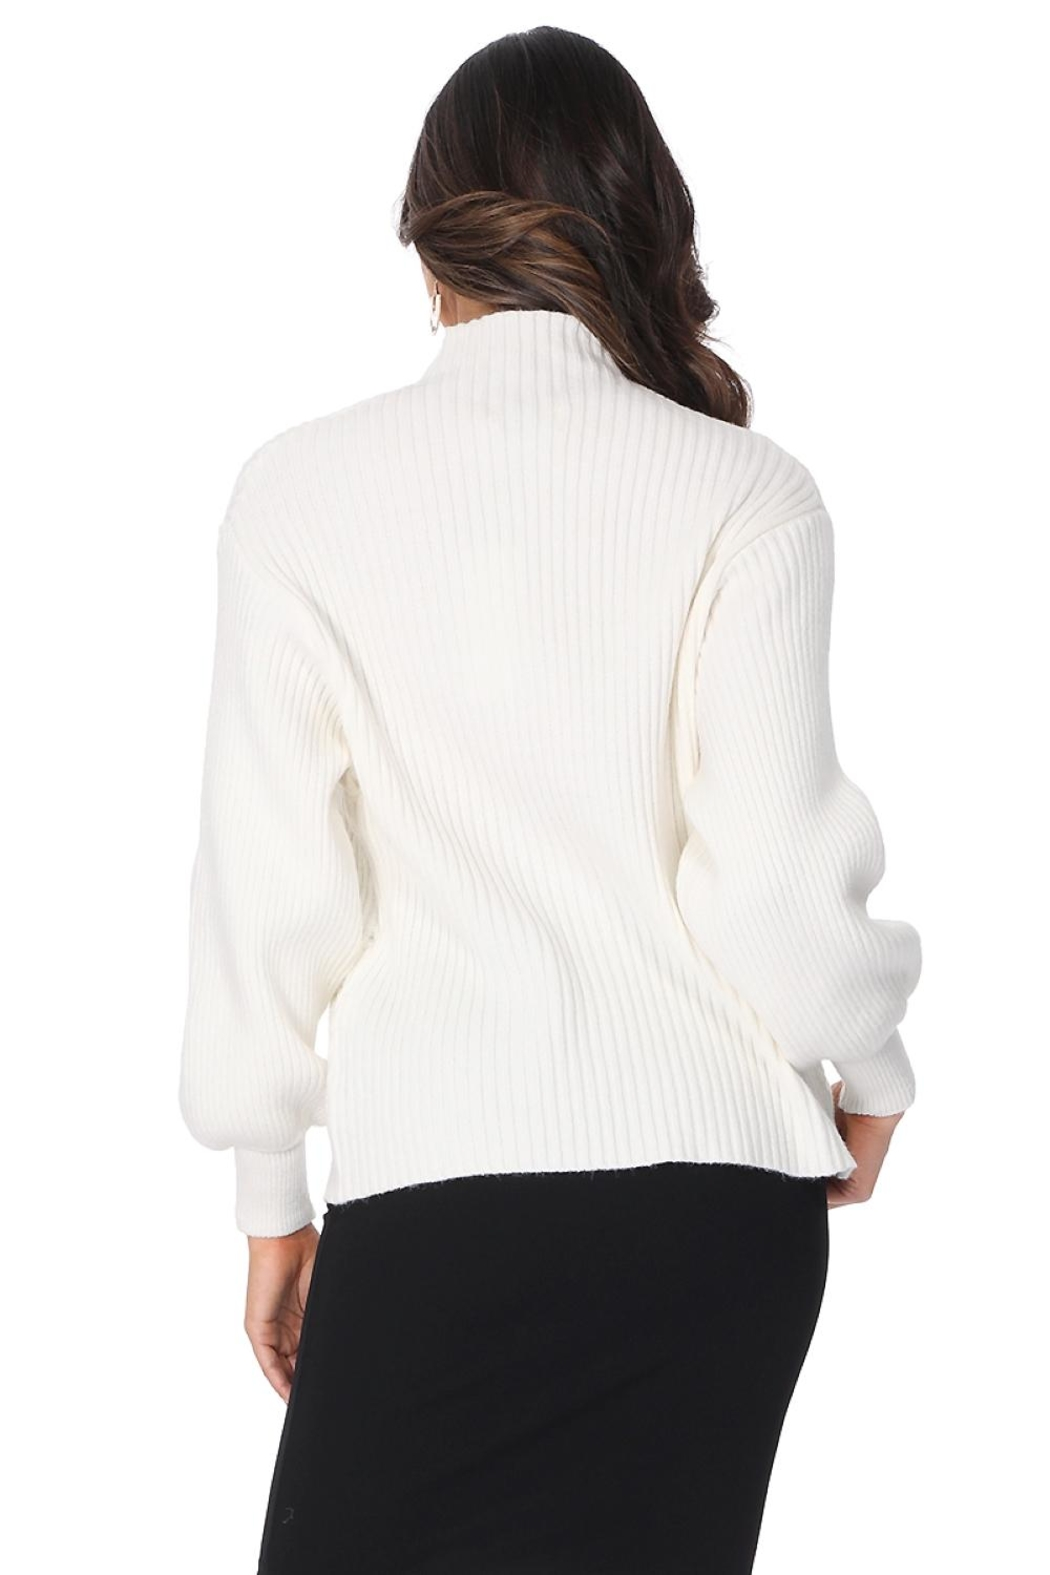 Aryeh White Turtle Neck Pullover - Back Cropped Image